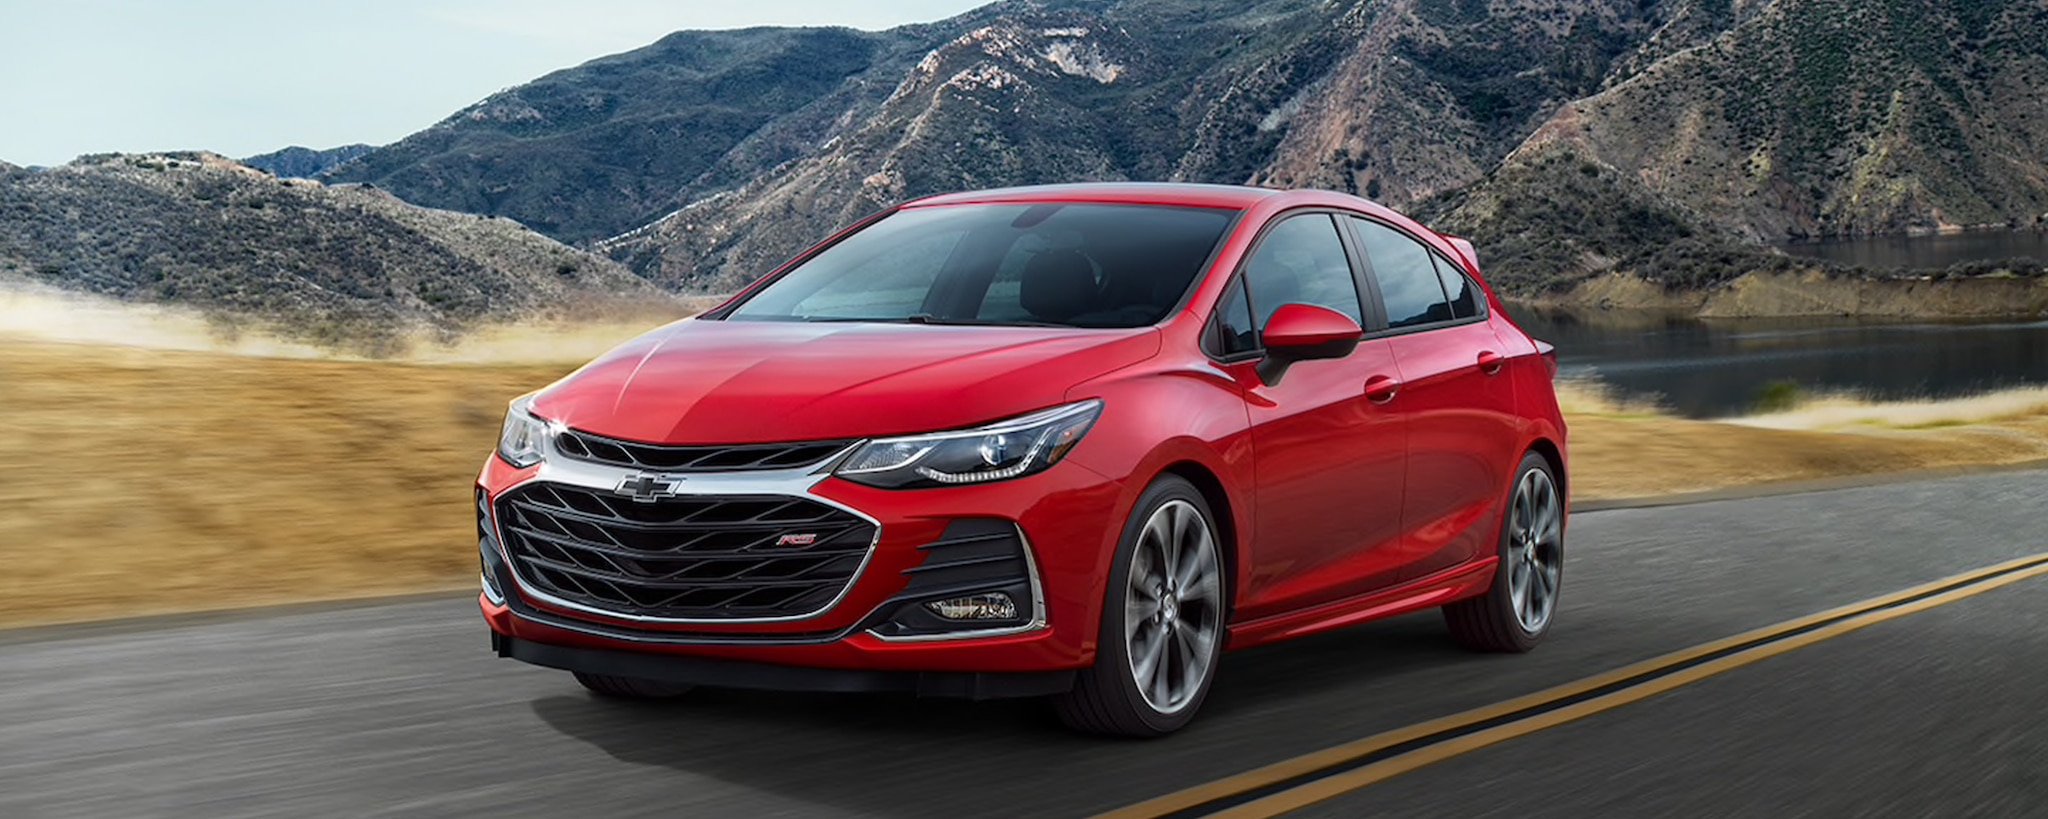 Chevrolet Cruze RS Hatch 2019